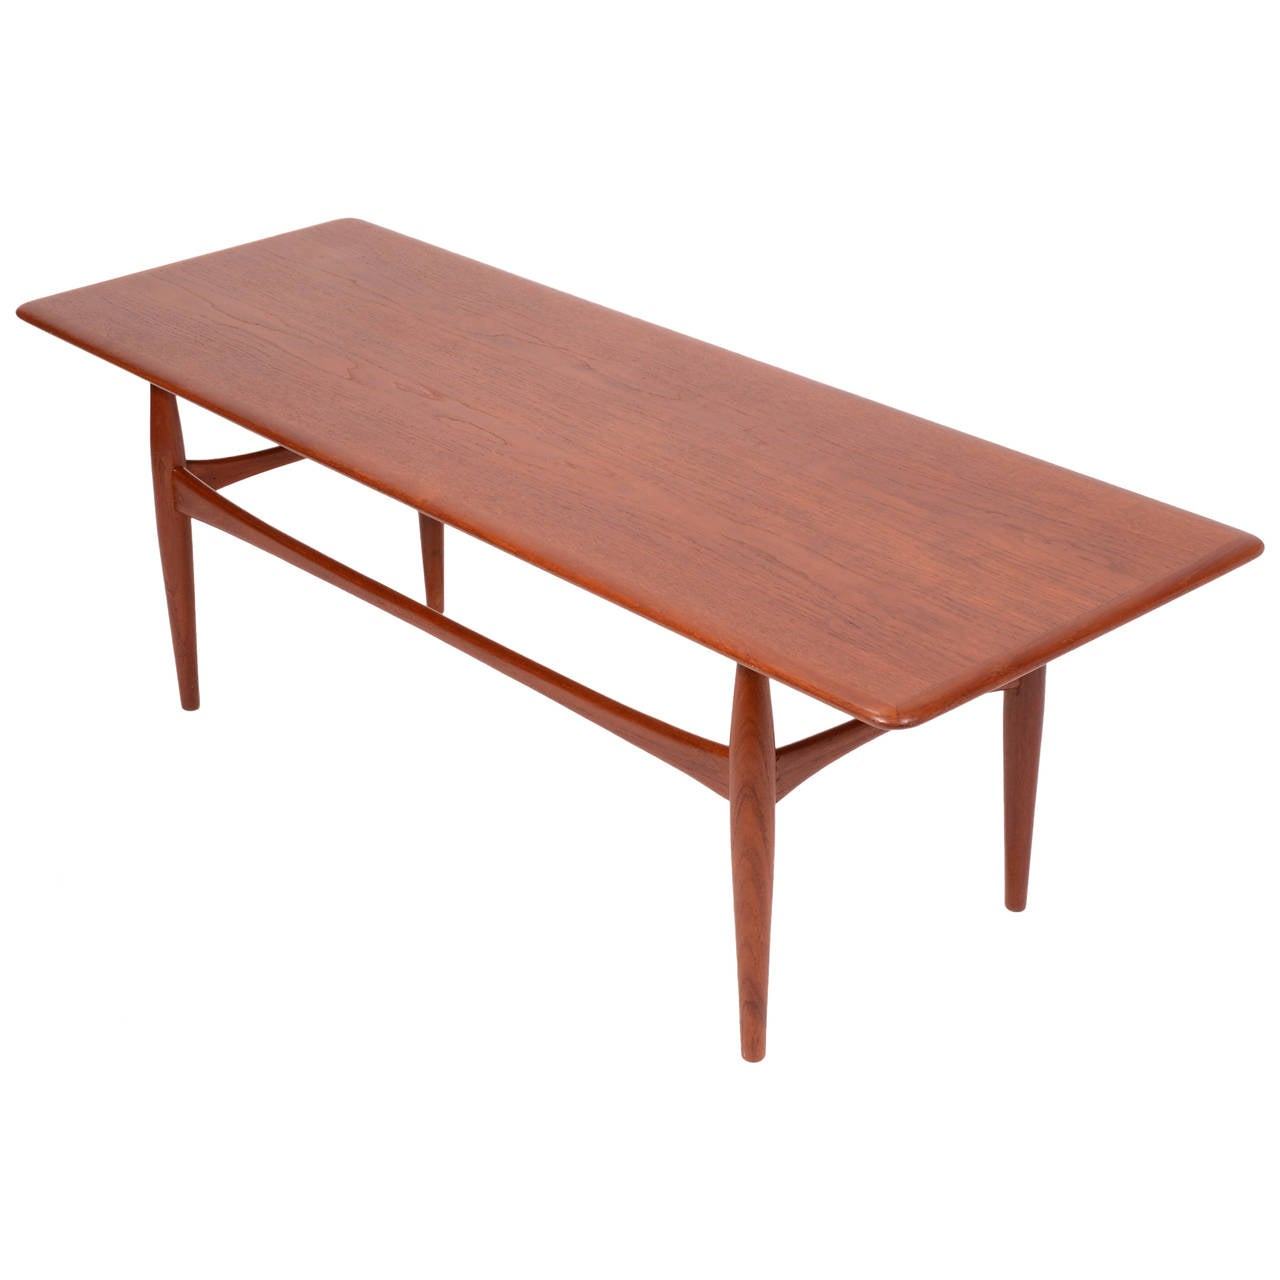 large danish modern coffee table in teak for sale at 1stdibs. Black Bedroom Furniture Sets. Home Design Ideas